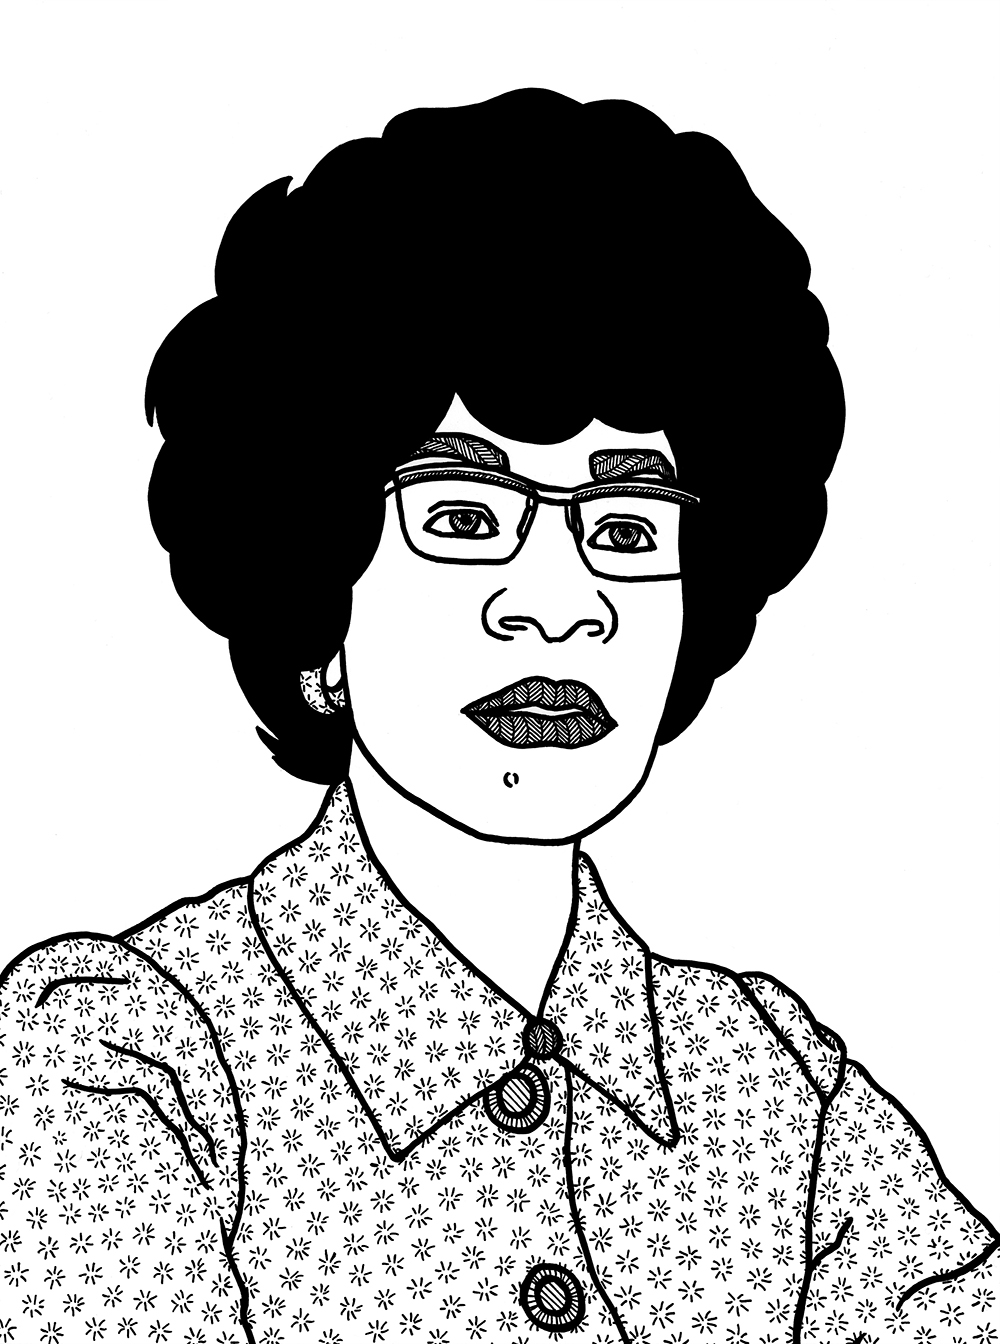 Shirley_Chisholm_2_72dpi_RGB_smaller3.jpg